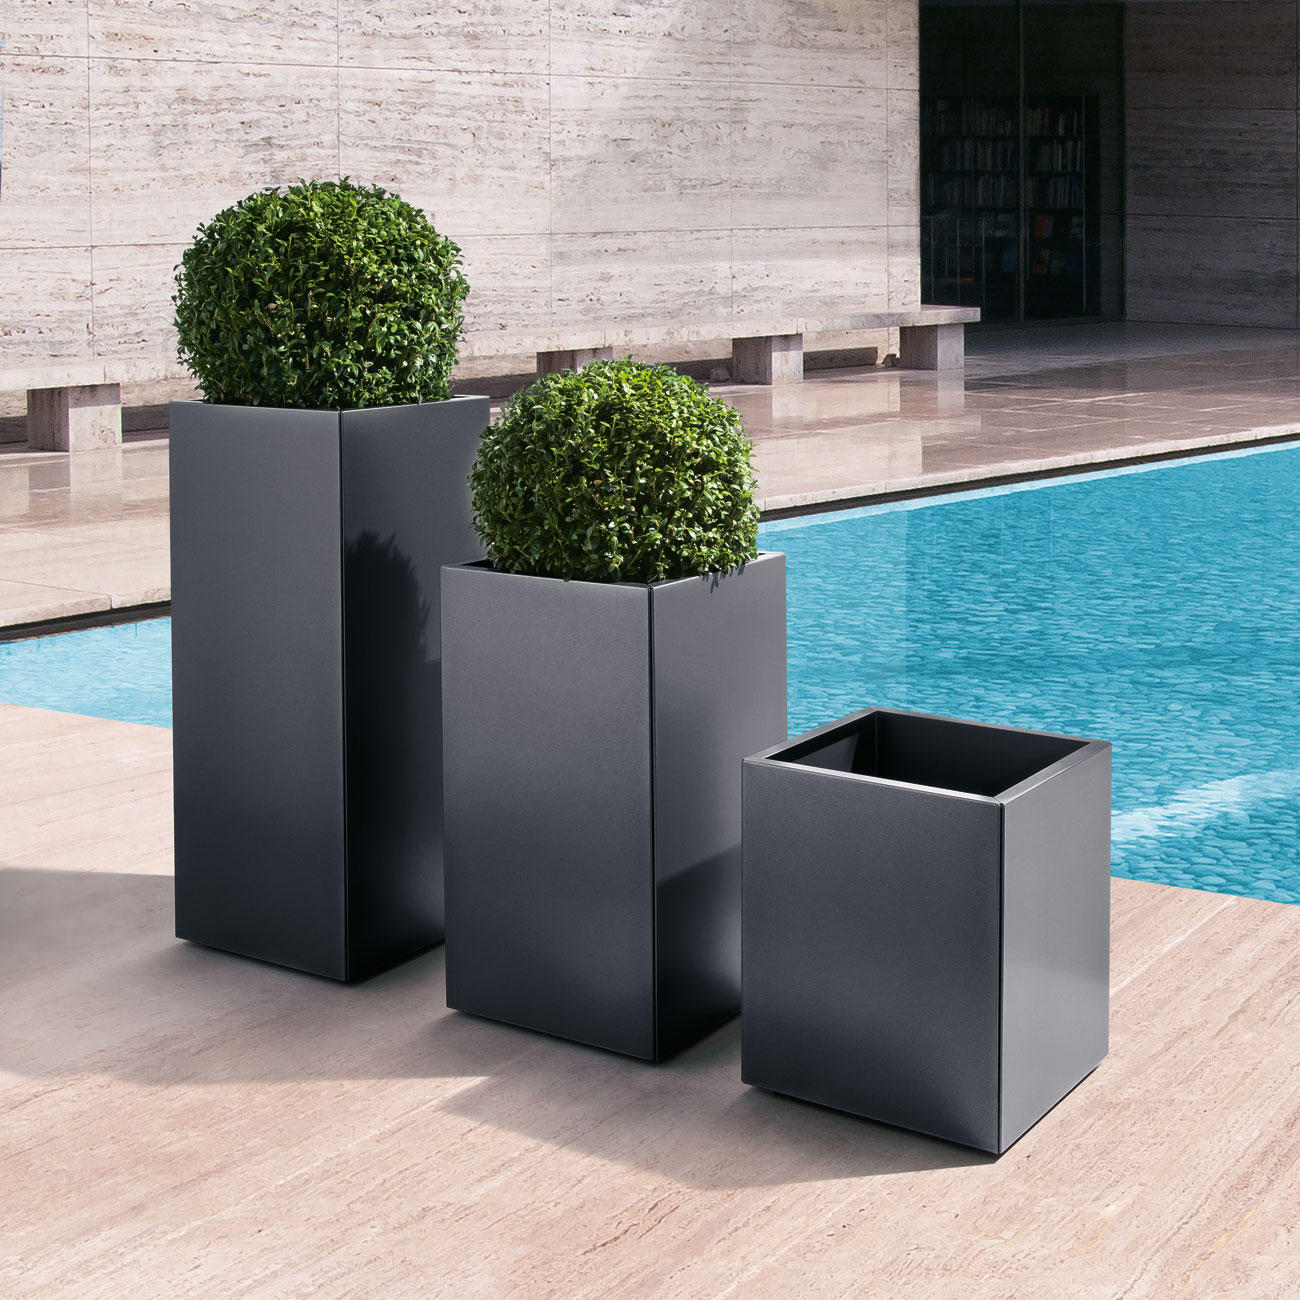 verrijdbare plantenbak planter goedkoop online kopen. Black Bedroom Furniture Sets. Home Design Ideas